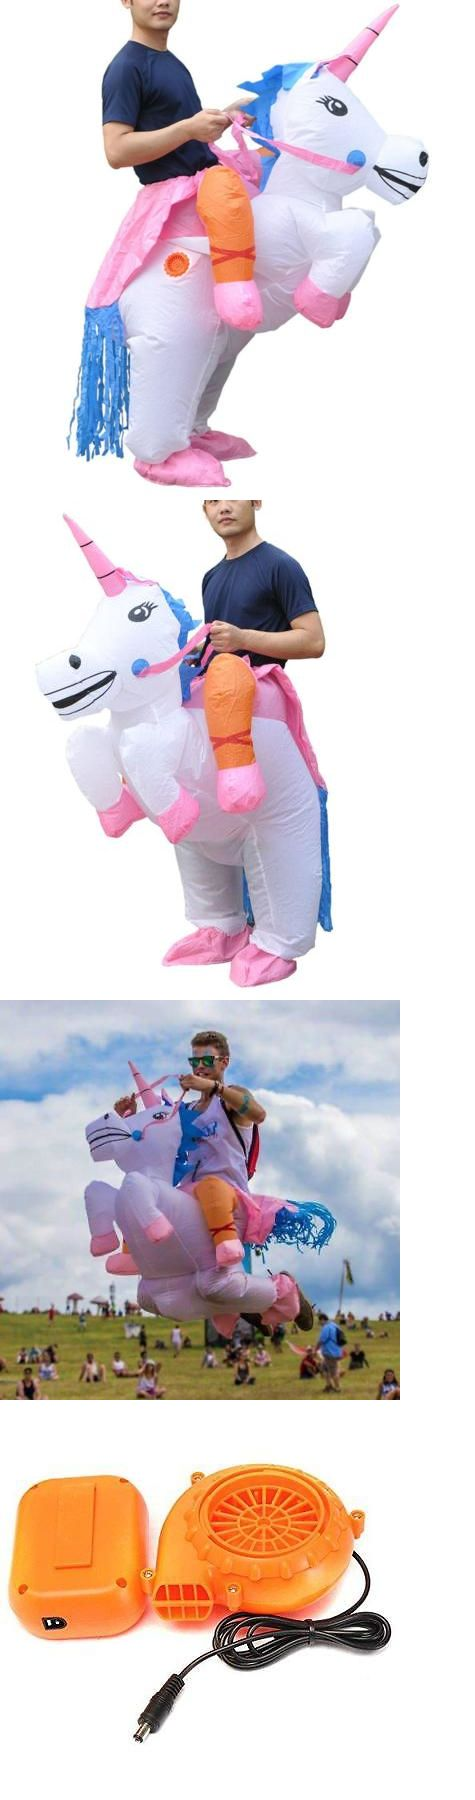 Halloween Costumes: Inflatable Adult Ride On Unicorn Party Halloween Fancy Couple Disguise Costume -> BUY IT NOW ONLY: $37.98 on eBay!